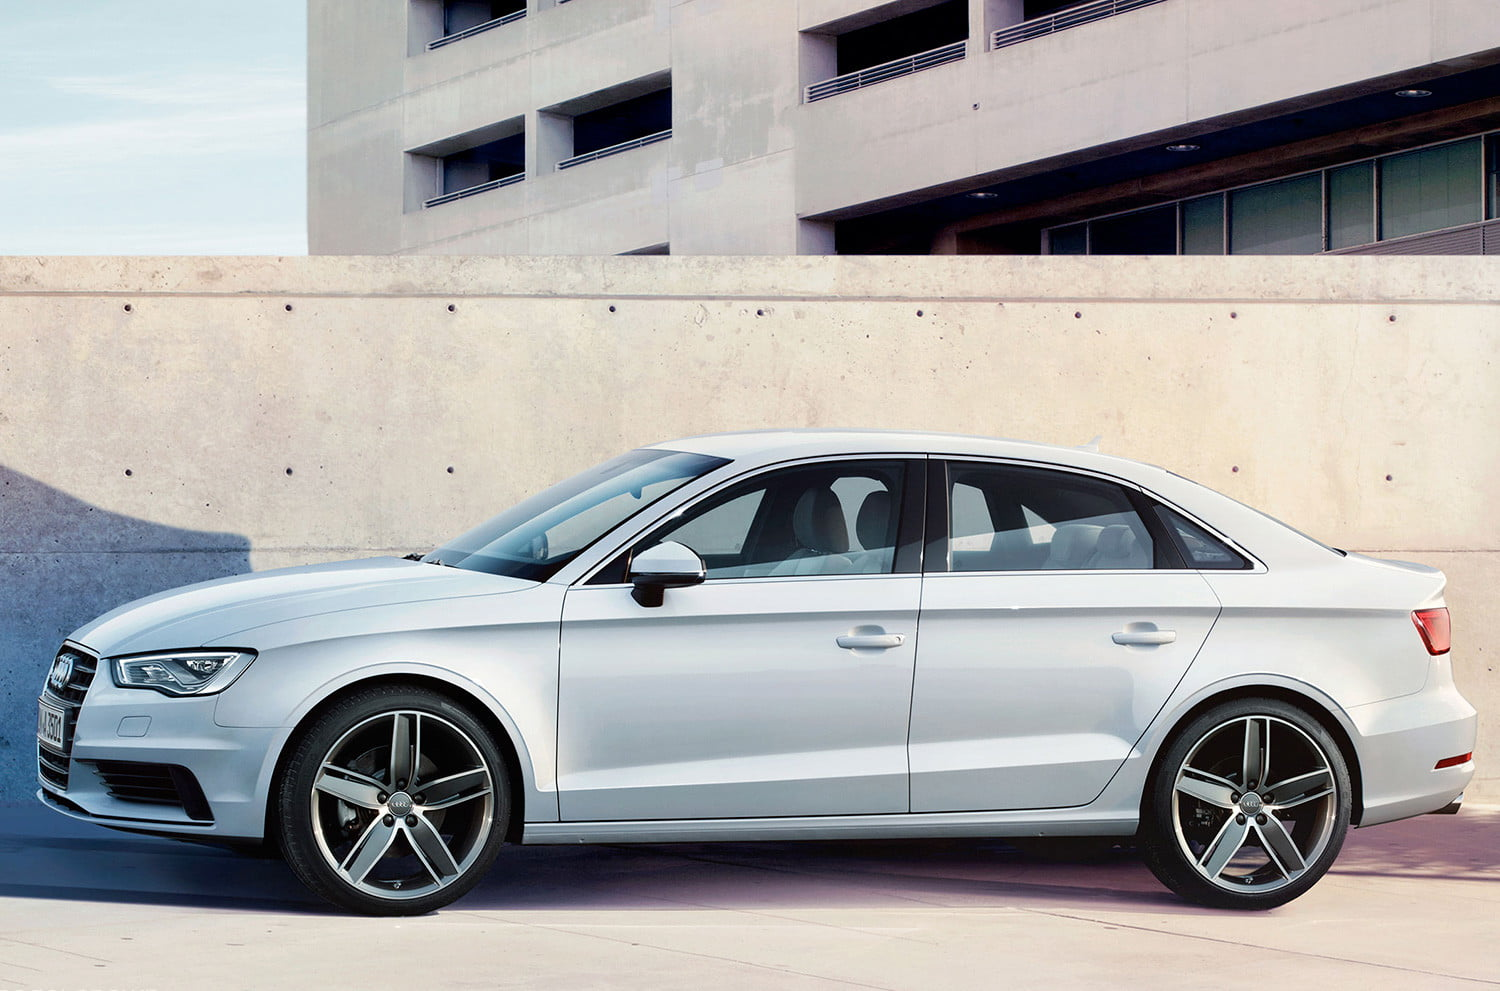 2015 audi a3 vs 2014 mercedes benz cla250 digital trends. Black Bedroom Furniture Sets. Home Design Ideas